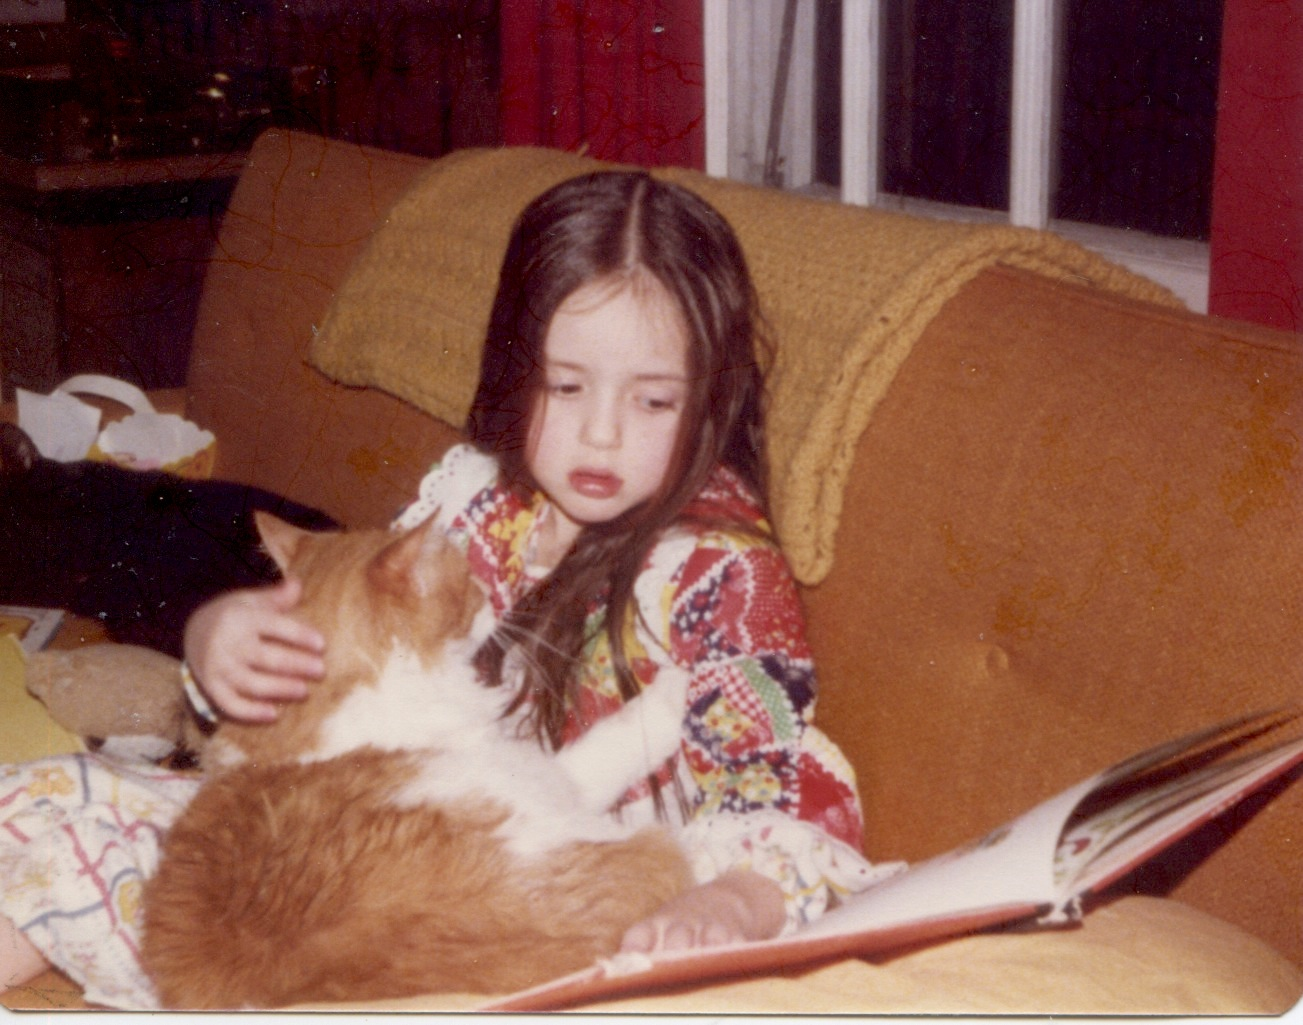 Stephanie in 1979 with Marmalade